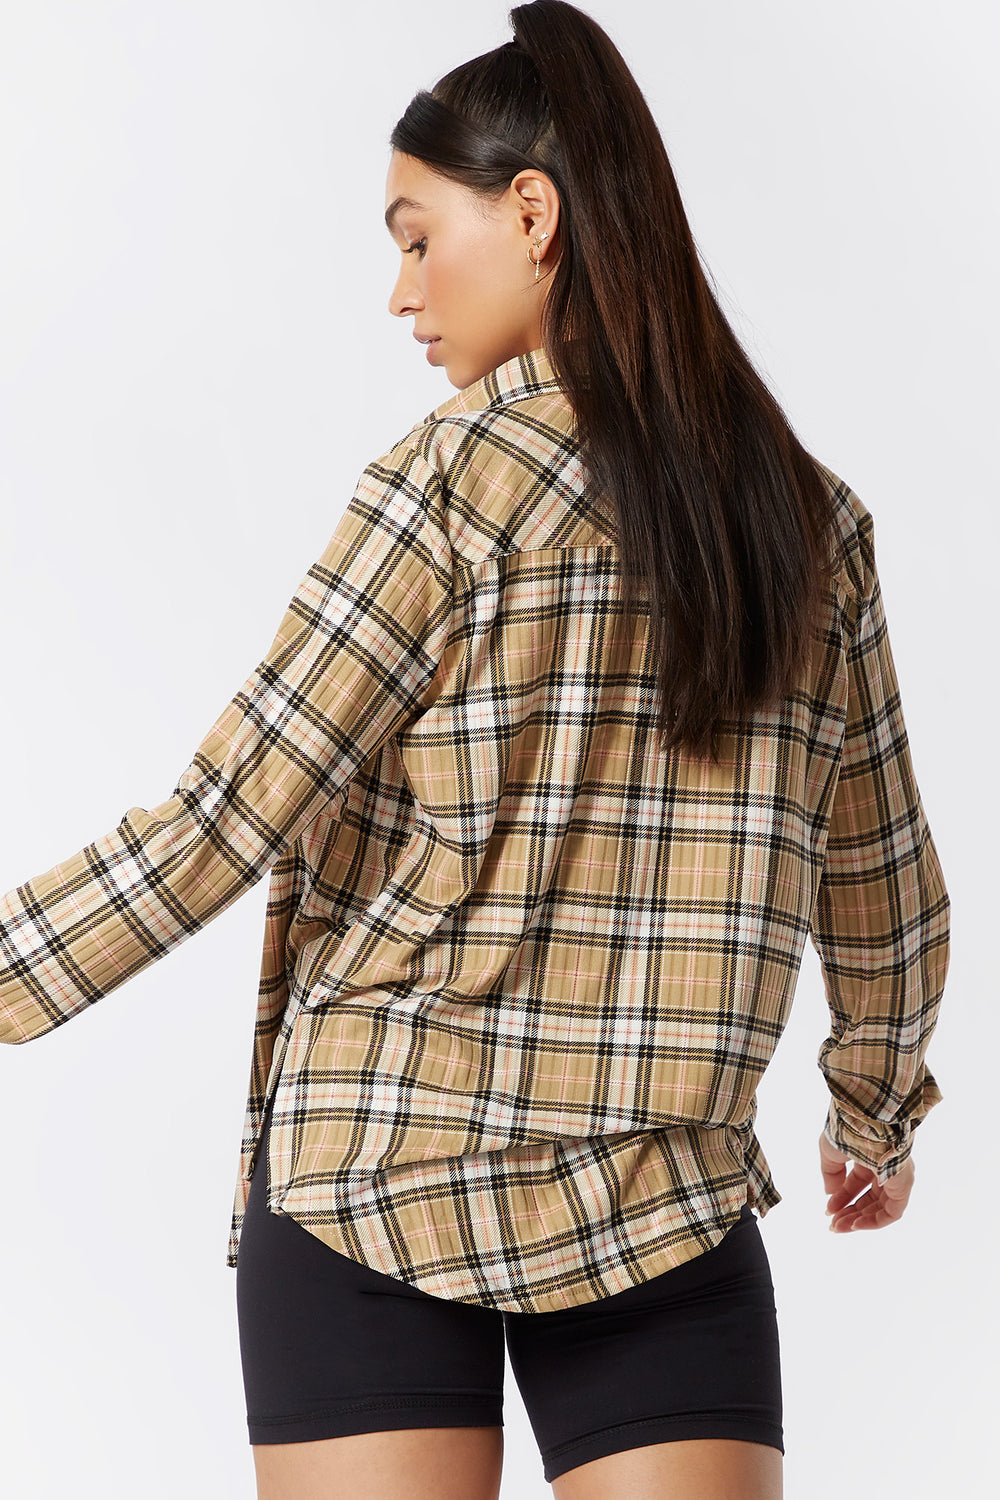 Soft Ribbed Oversized Plaid Button-Up Top Beige